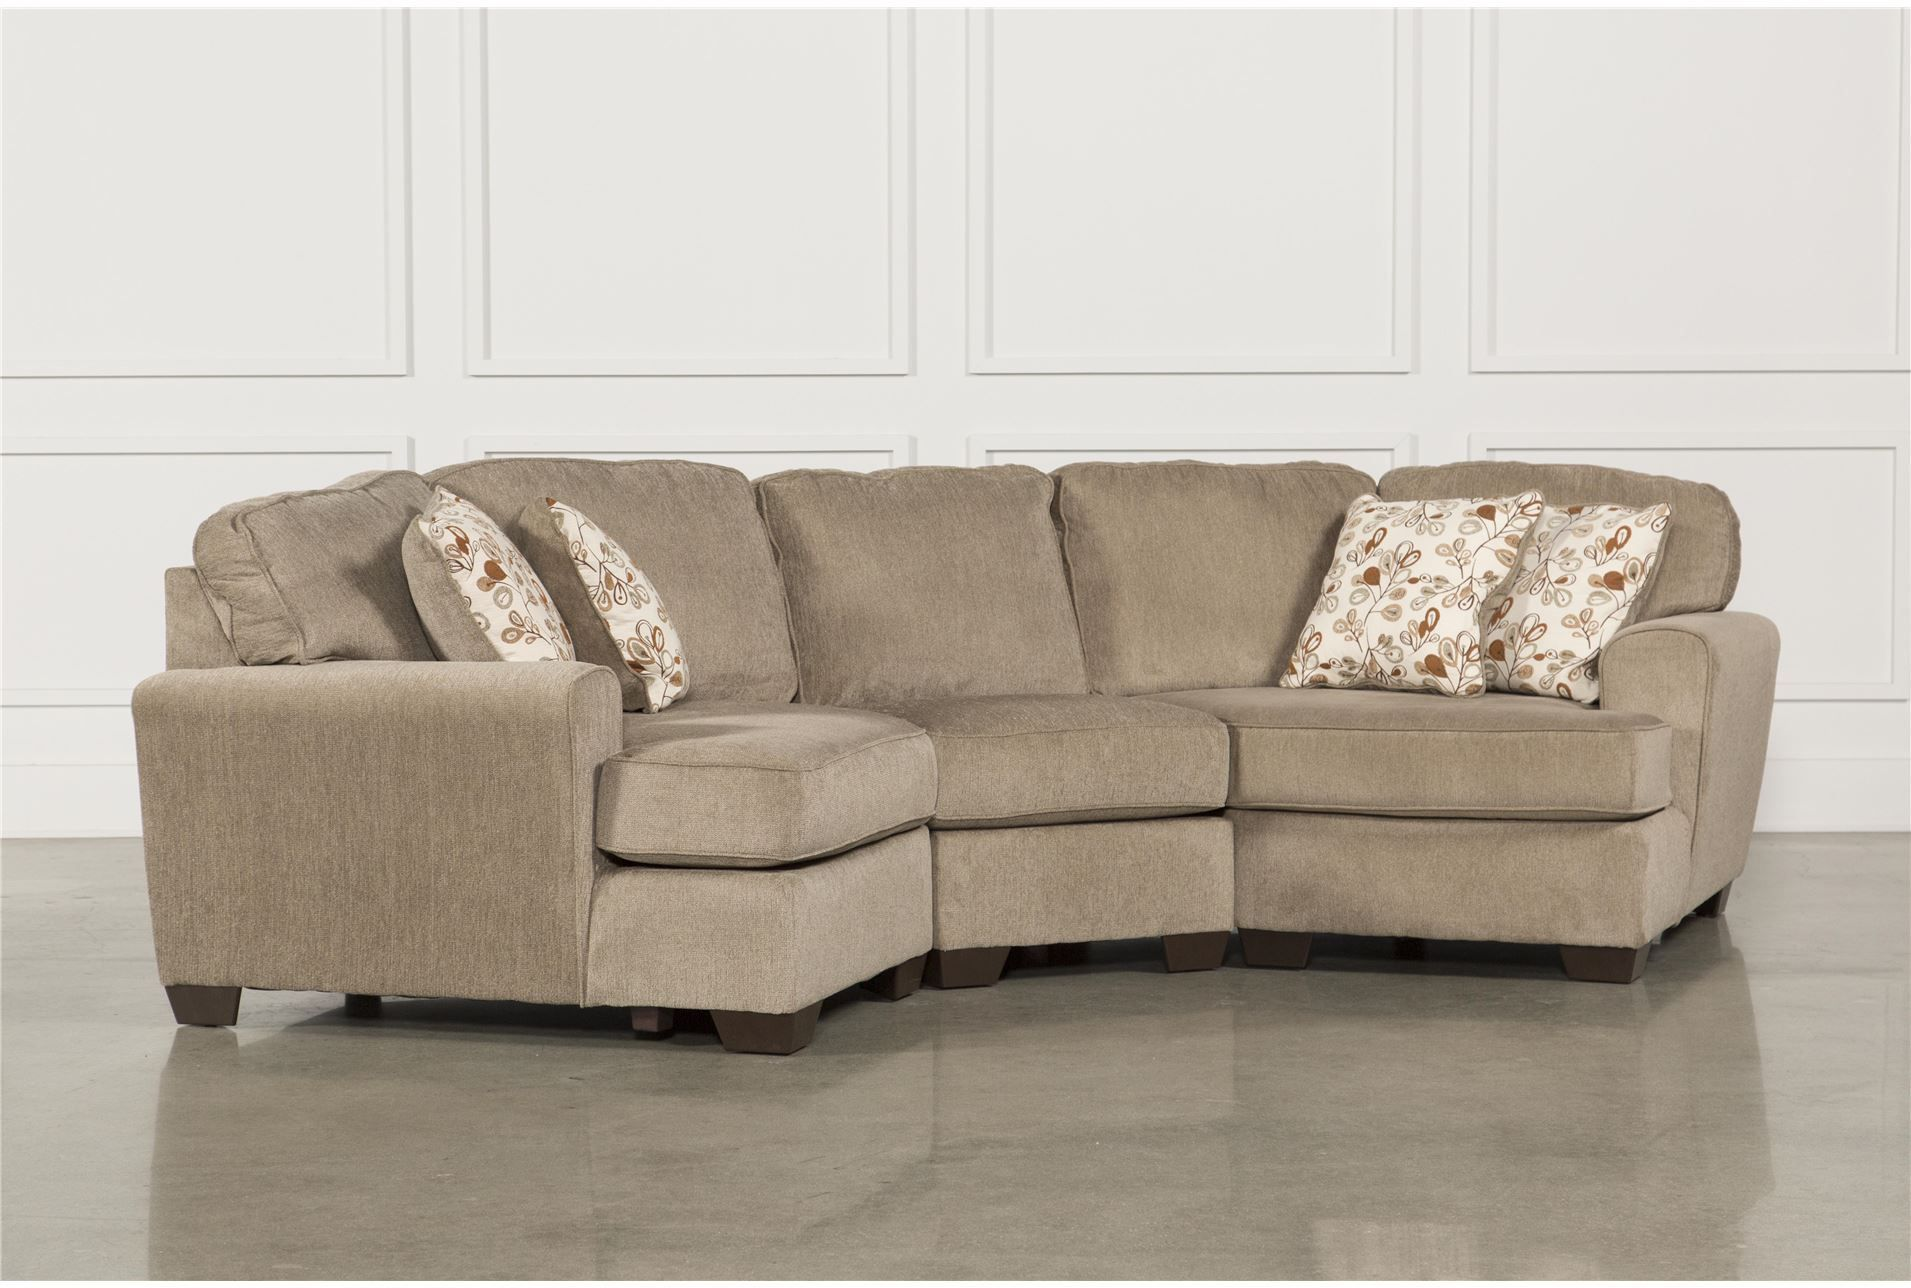 Best Patola Park 3 Piece Sectional W 2 Cuddlers Dimensions 152 400 x 300